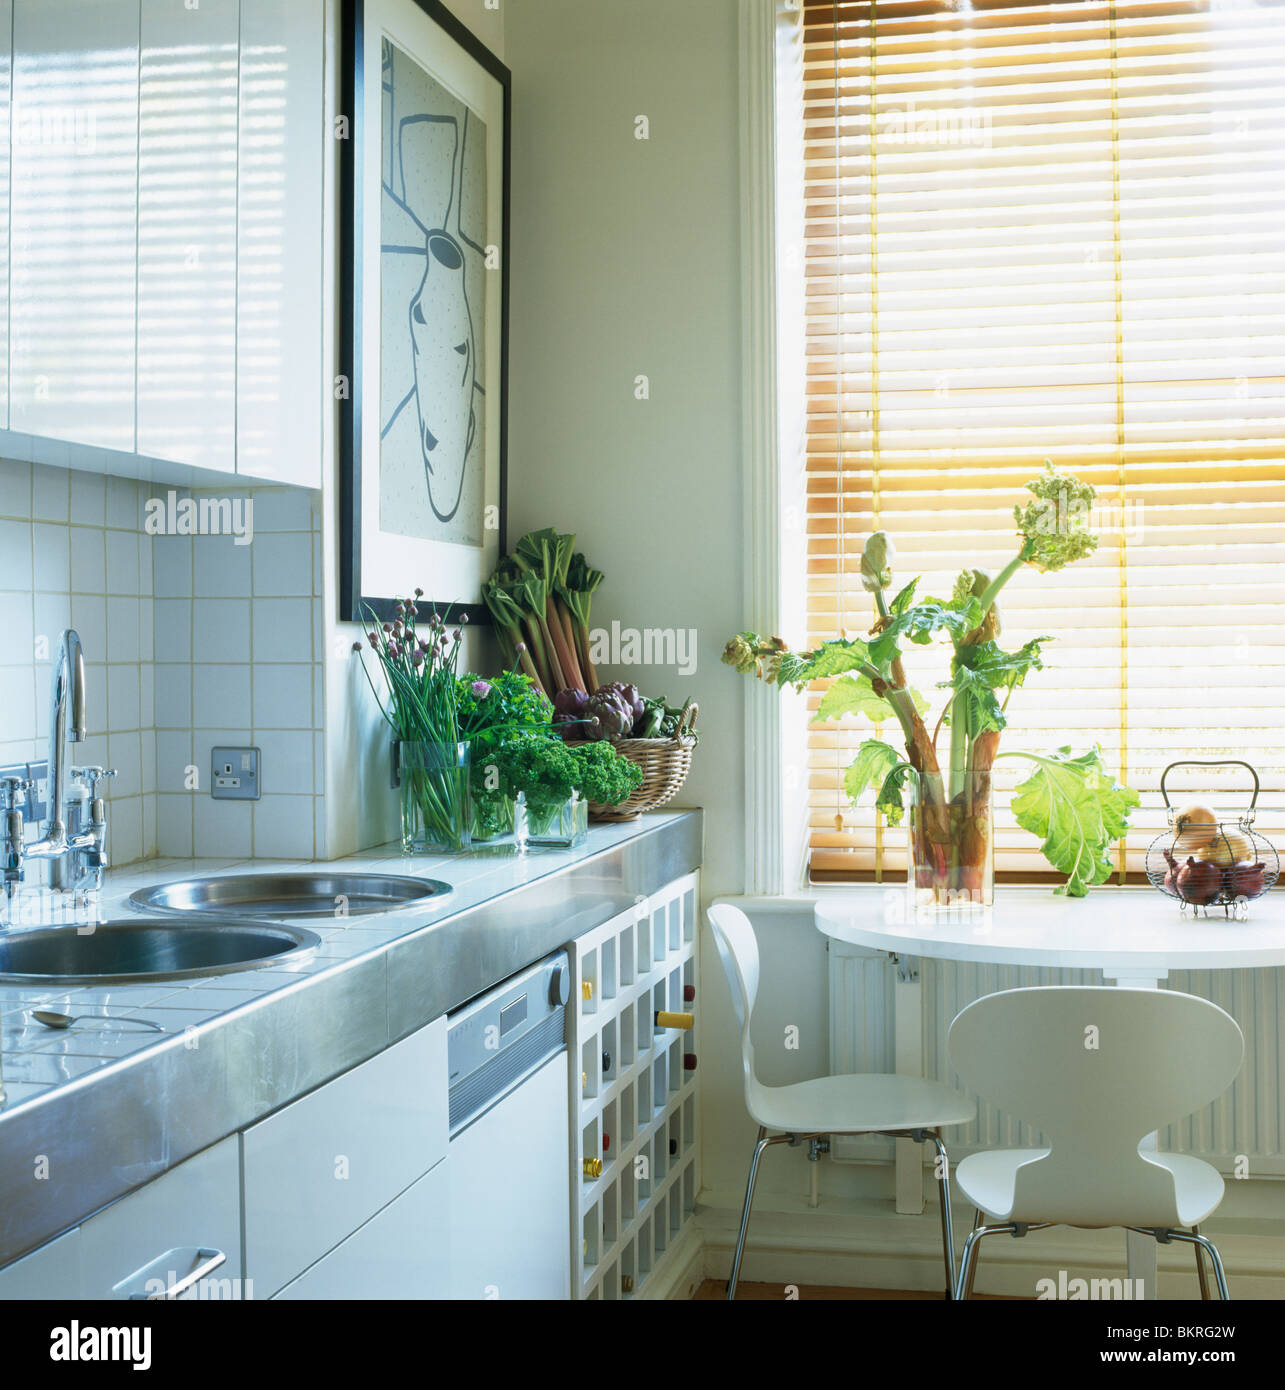 Blinds Blind Blinds Small Stock Photos & Blinds Blind Blinds Small ...